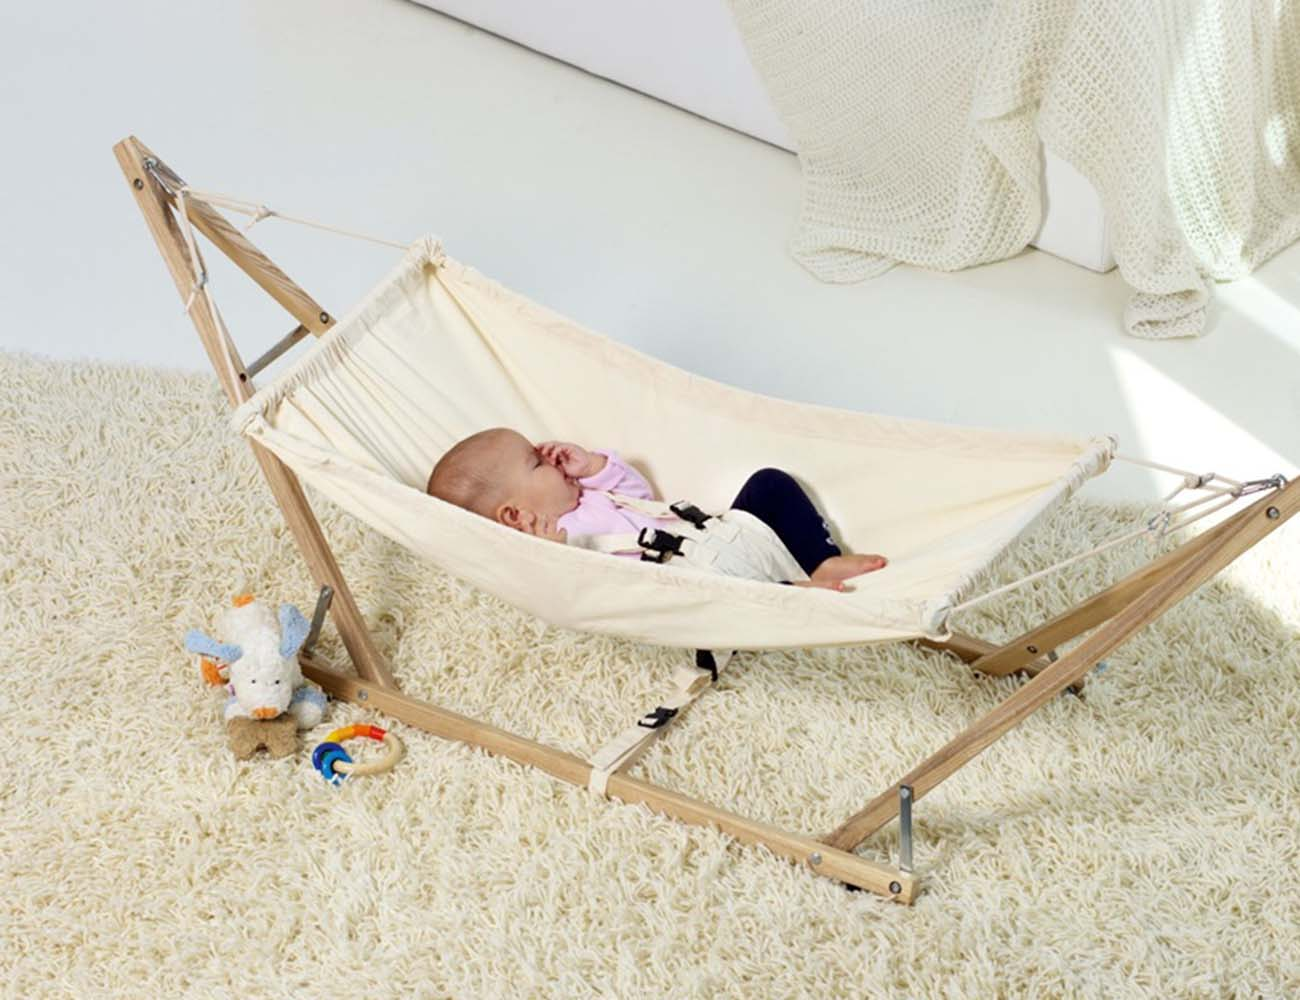 Le Meilleur Koala Baby Hammock And Stand From Cuckooland » Gadget Flow Ce Mois Ci